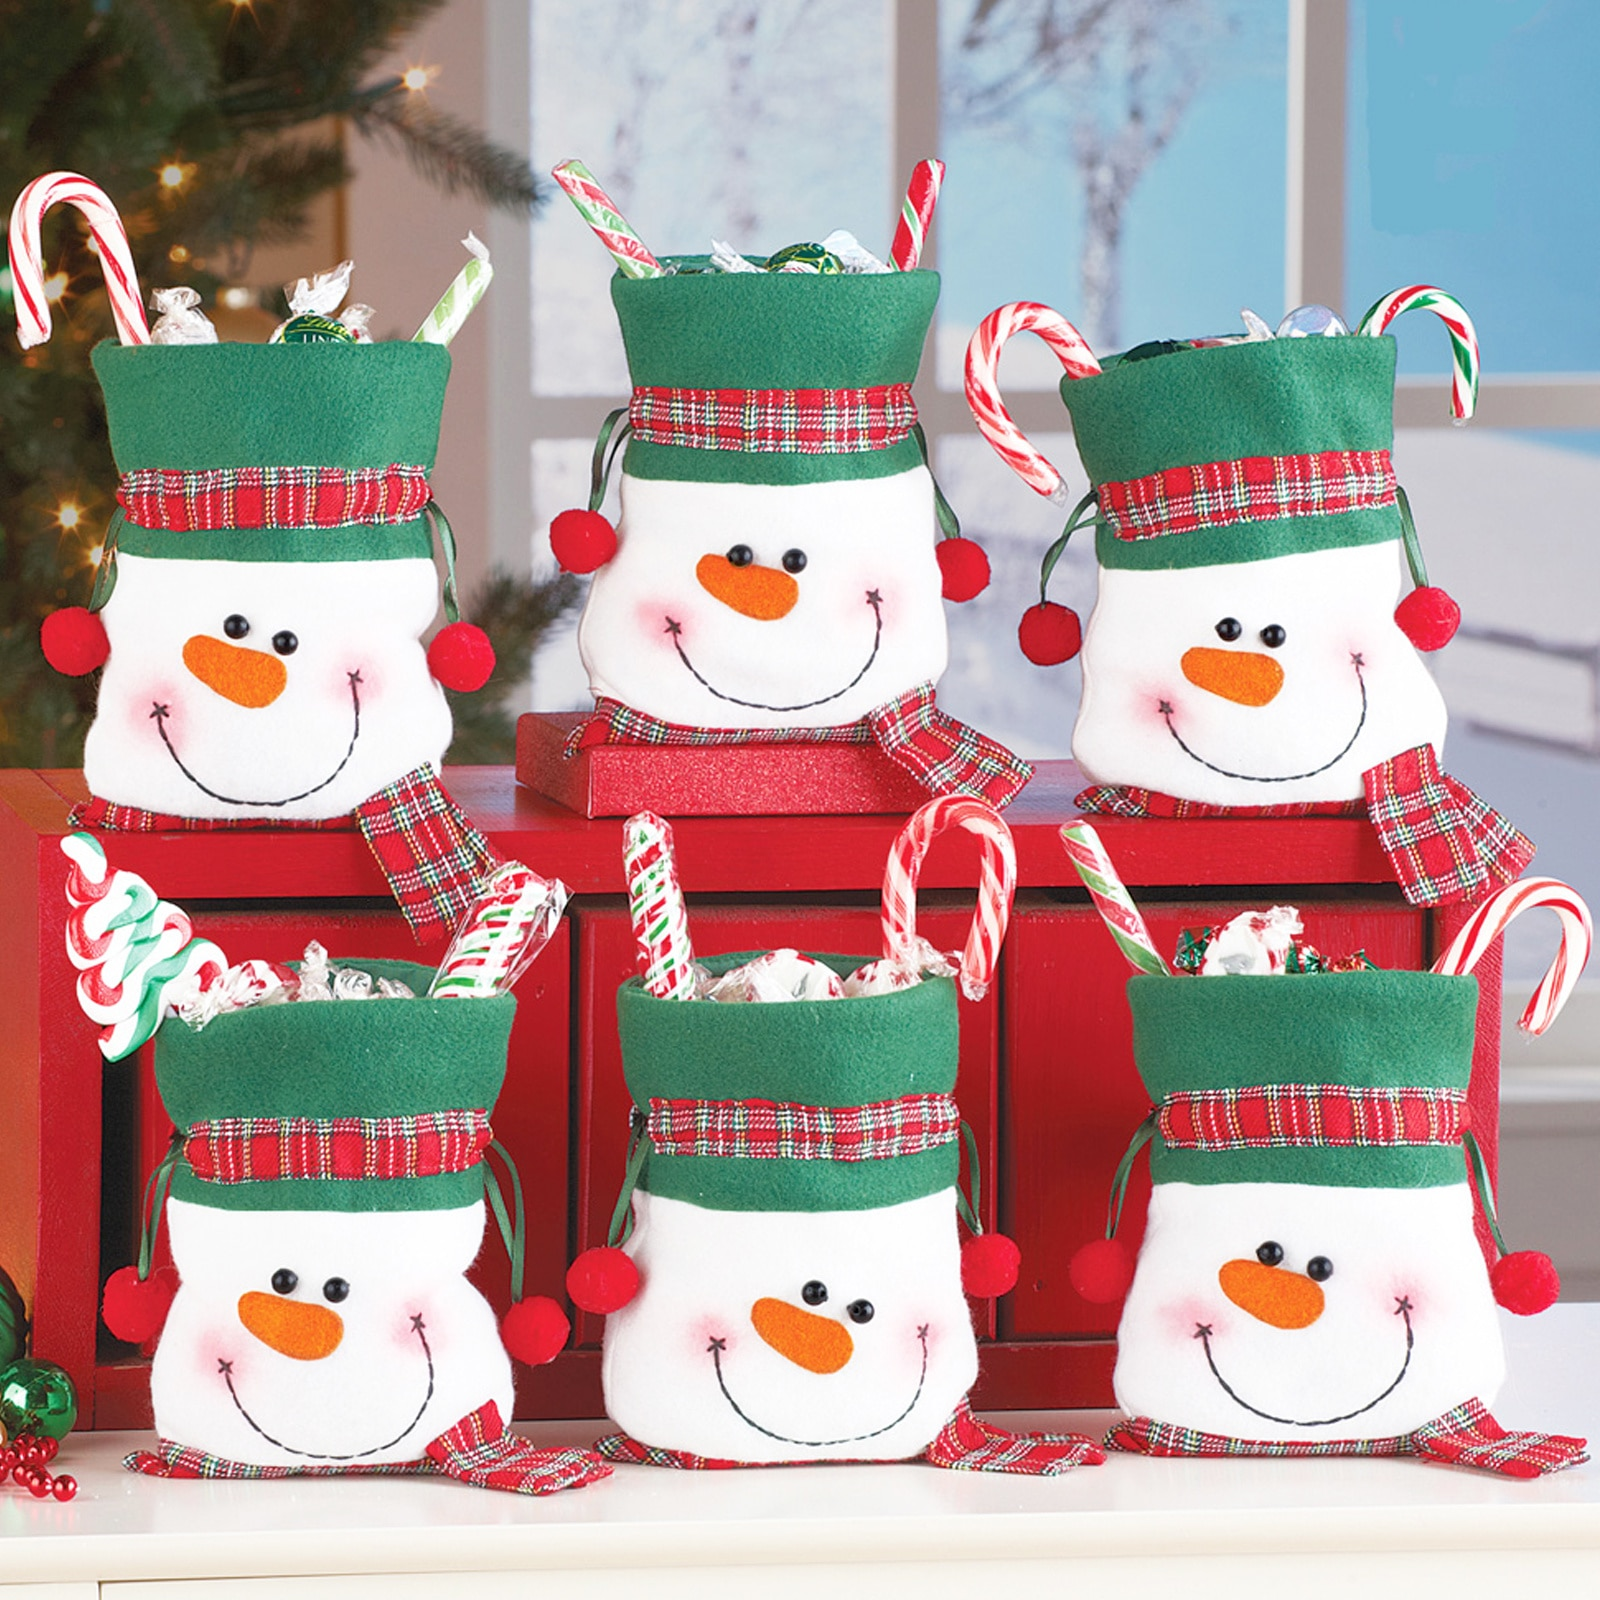 Snowman 25x14cm Christmas Bunch of Candy Bags Christmas Products Children's Gift Bag Holiday Xmas Pa